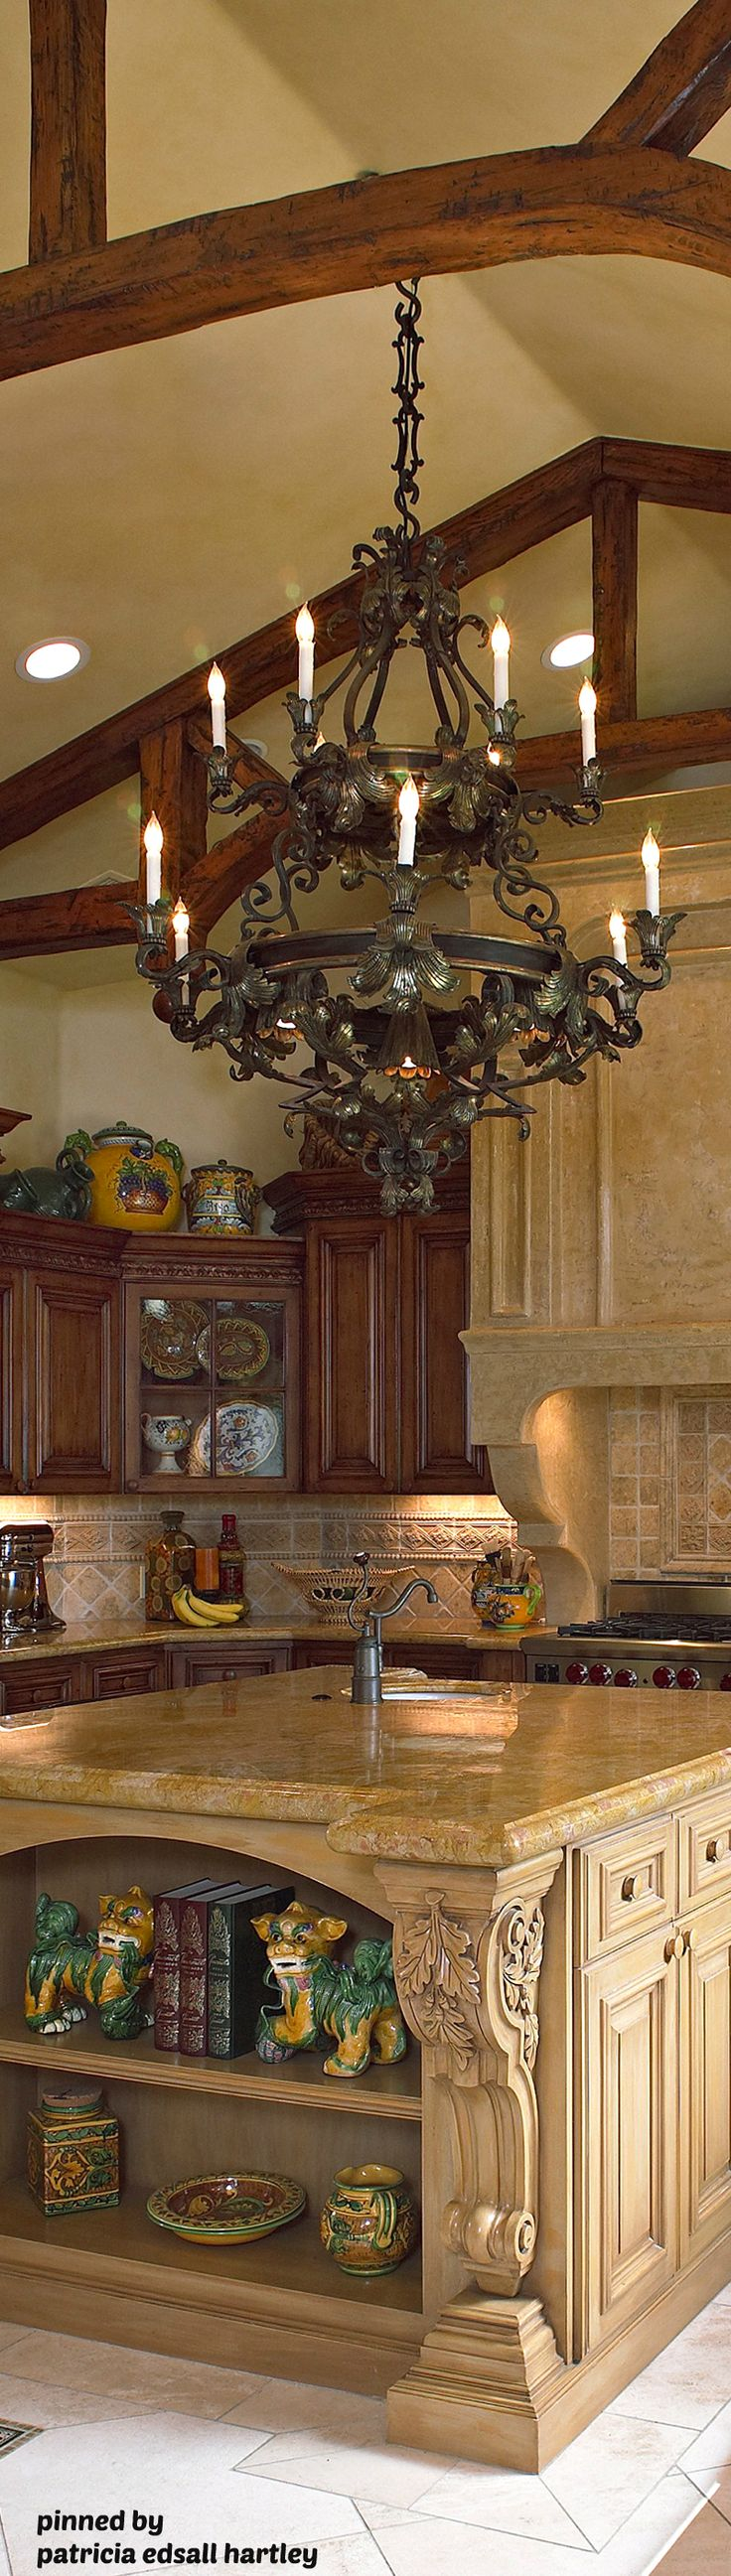 best 25 tuscan kitchen decor ideas on pinterest kitchen utensil mediterranean tuscan old world decor